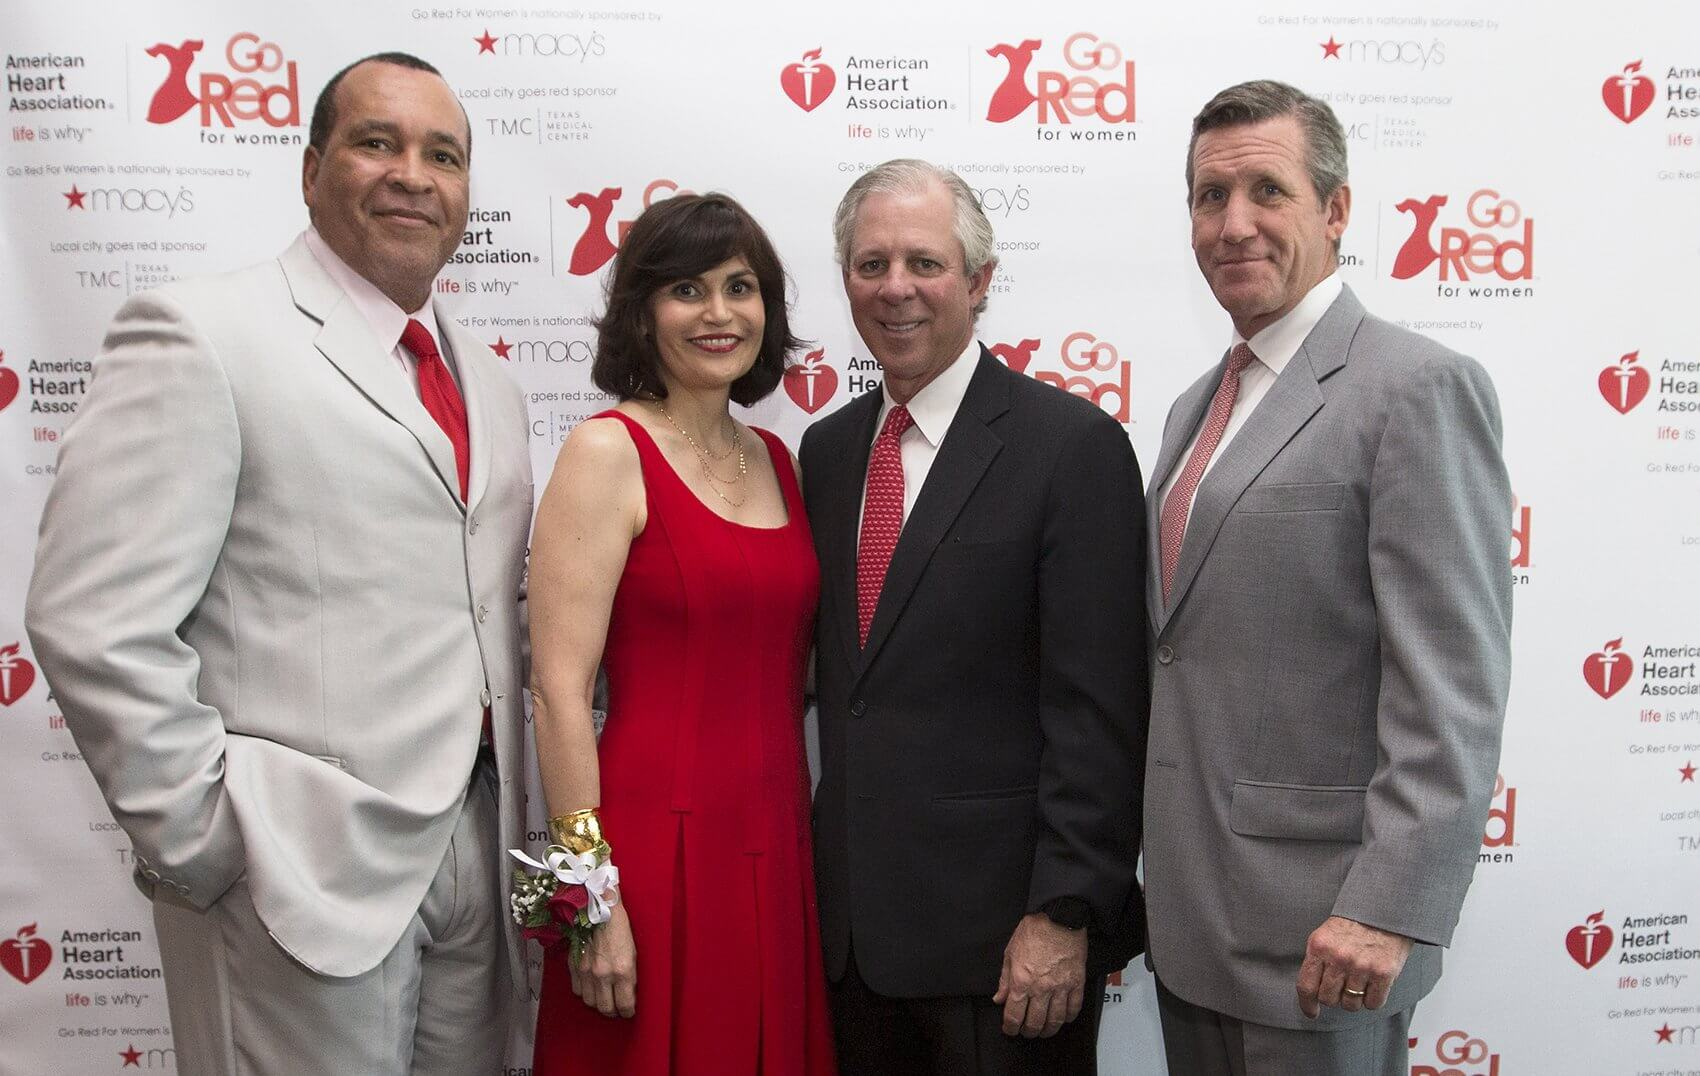 The Texas Medical Center team, from left: Larry Stokes, senior vice president of shared services; Denise Castillo-Rhodes, executive vice president and chief financial officer; Robert C. Robbins, M.D., president and CEO; and William F. McKeon, executive vice president and chief strategy and operating officer.